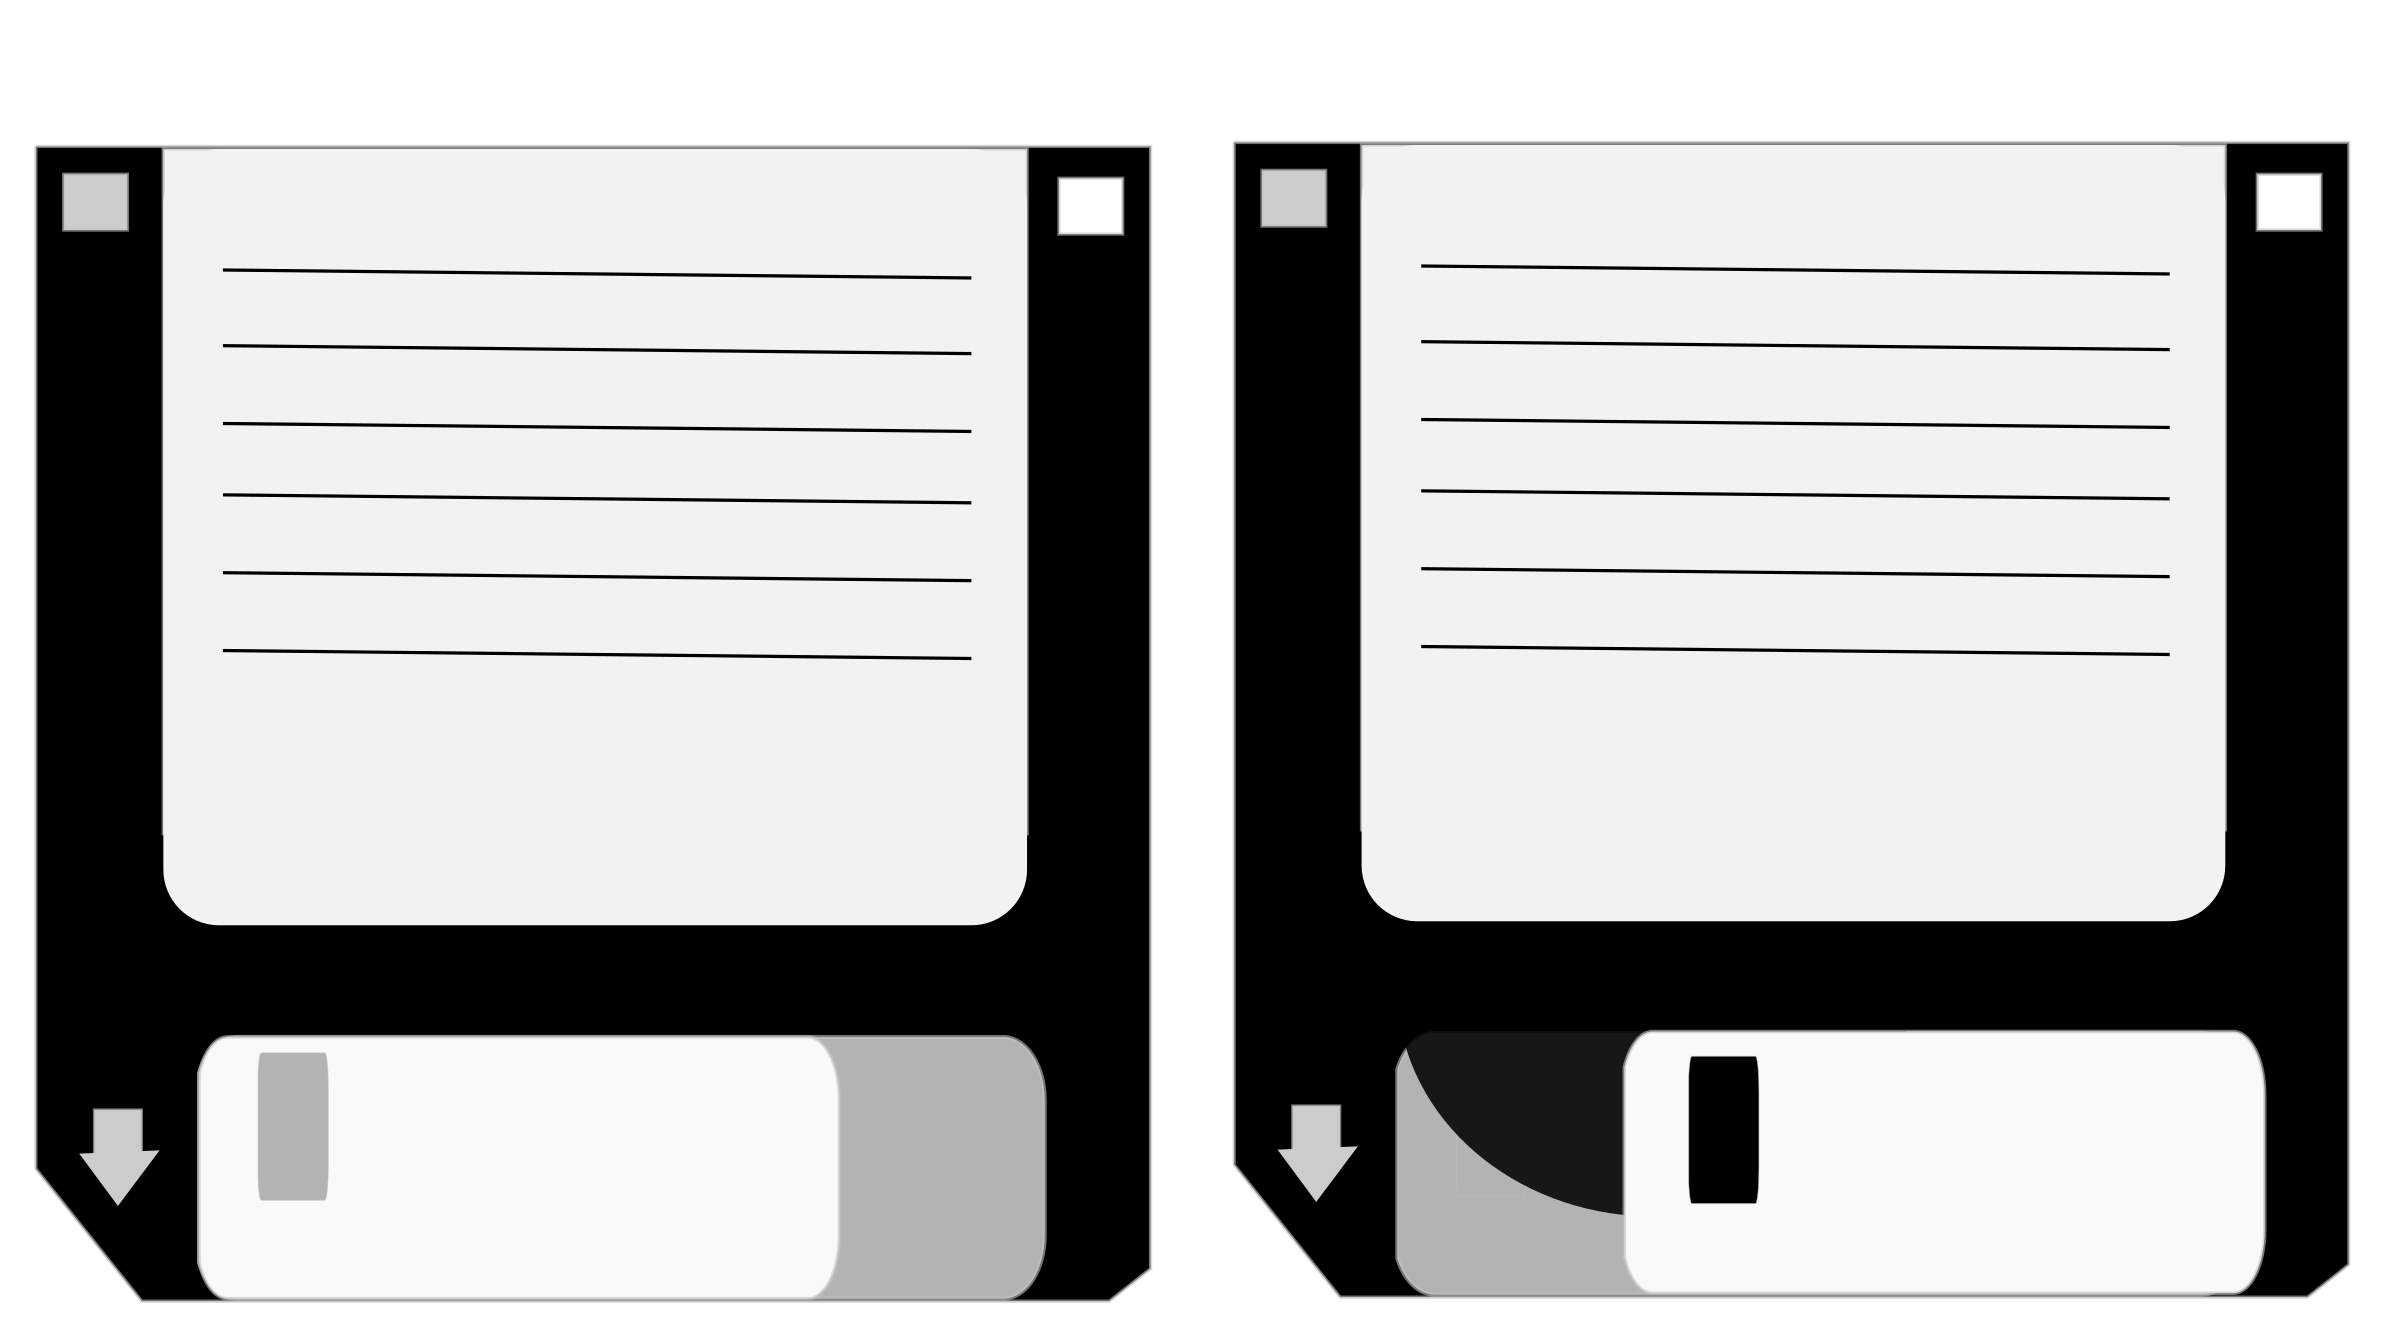 Floppy Disks by protop96